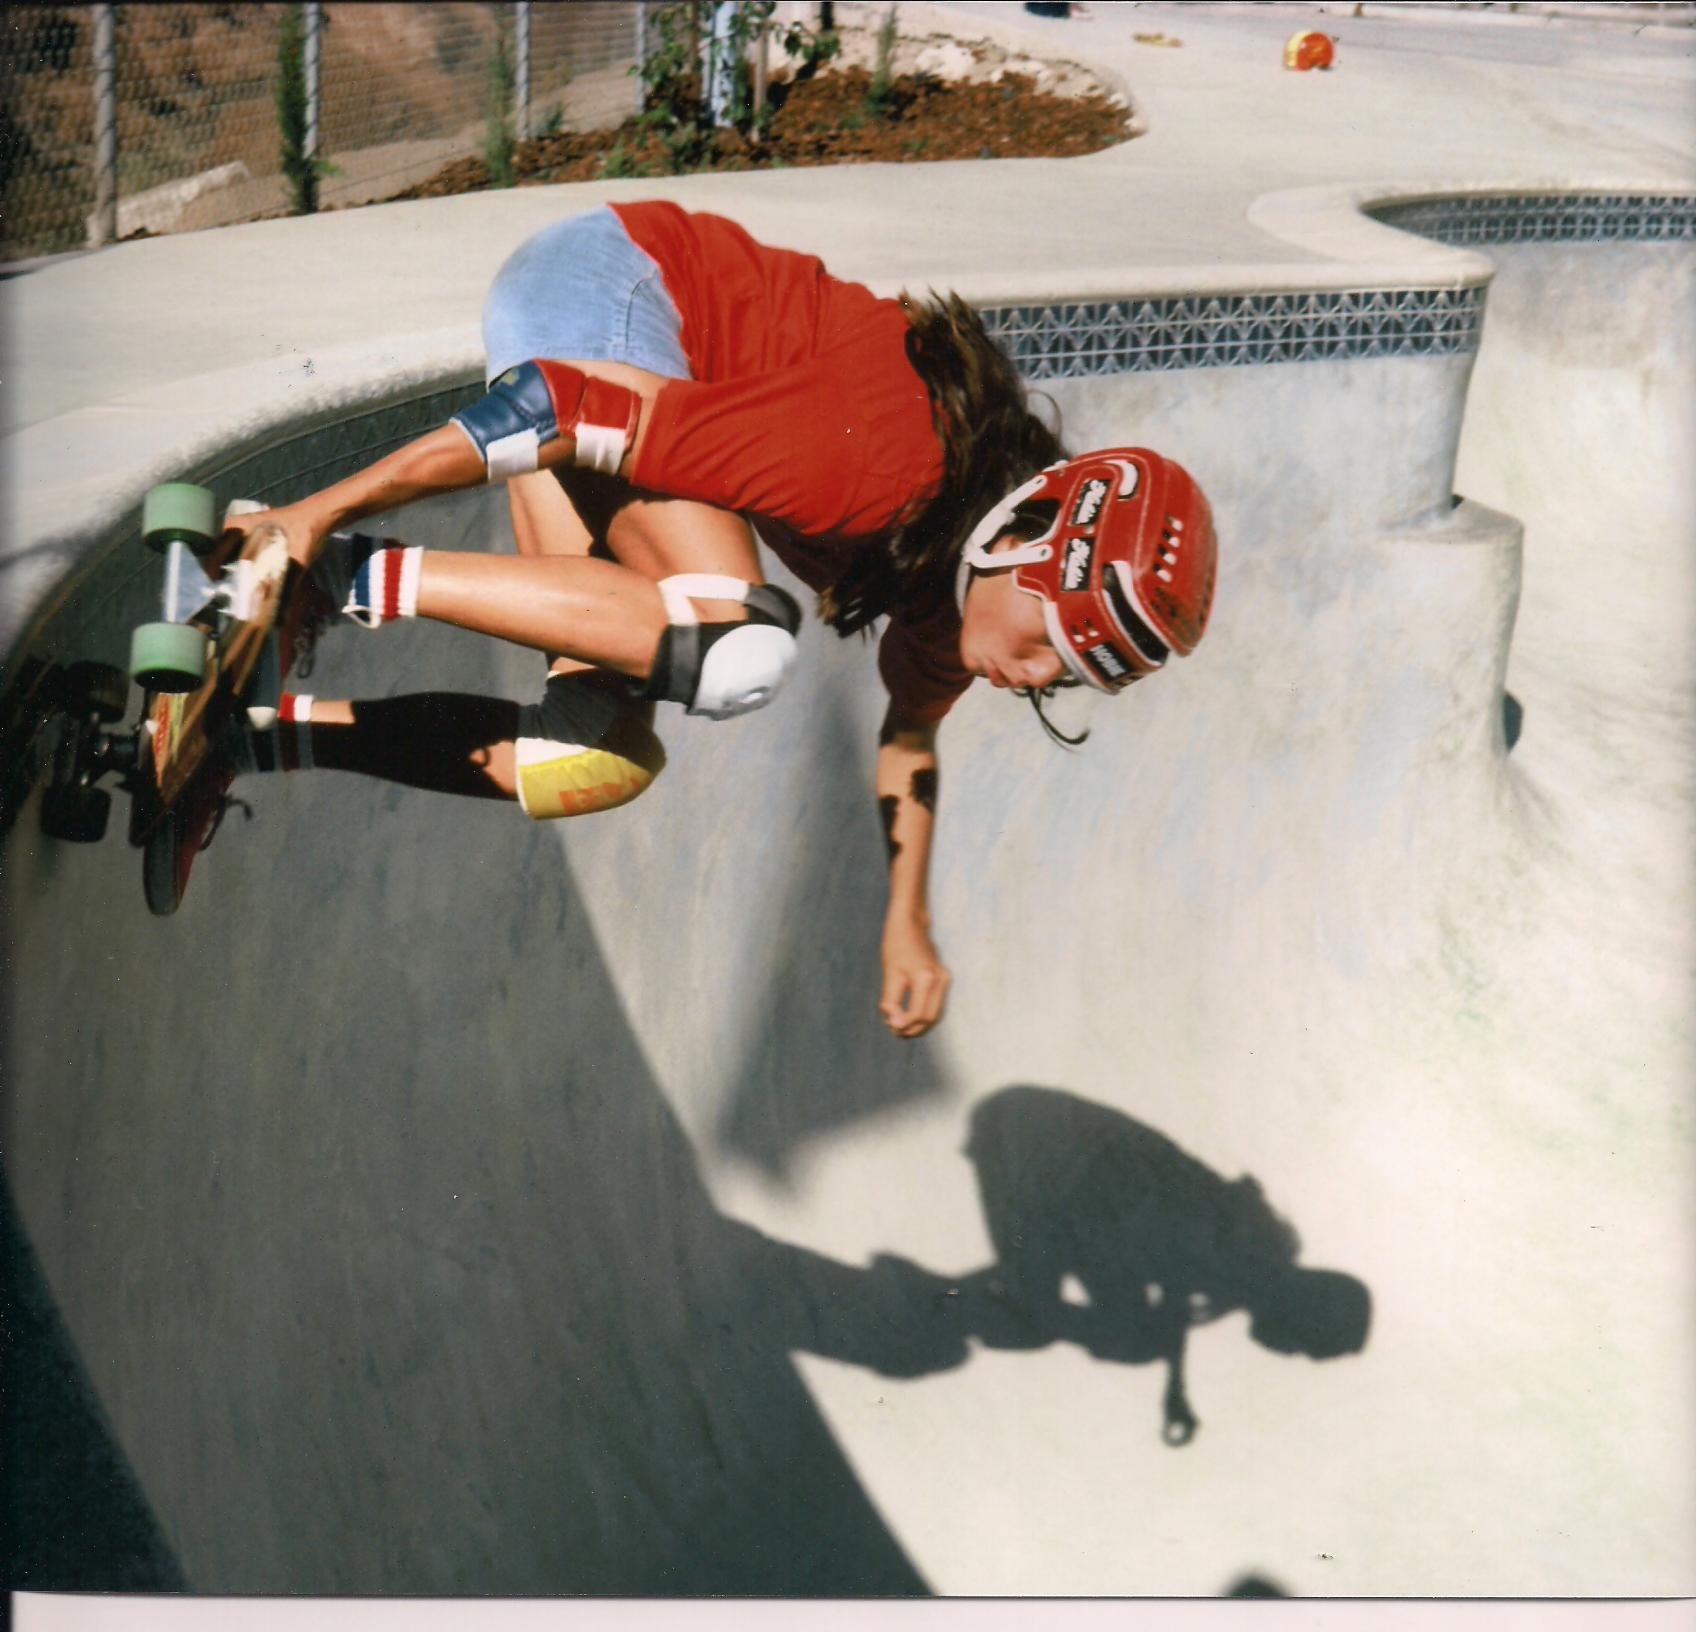 Photo: Carving the coping at Spring Valley Skate Park